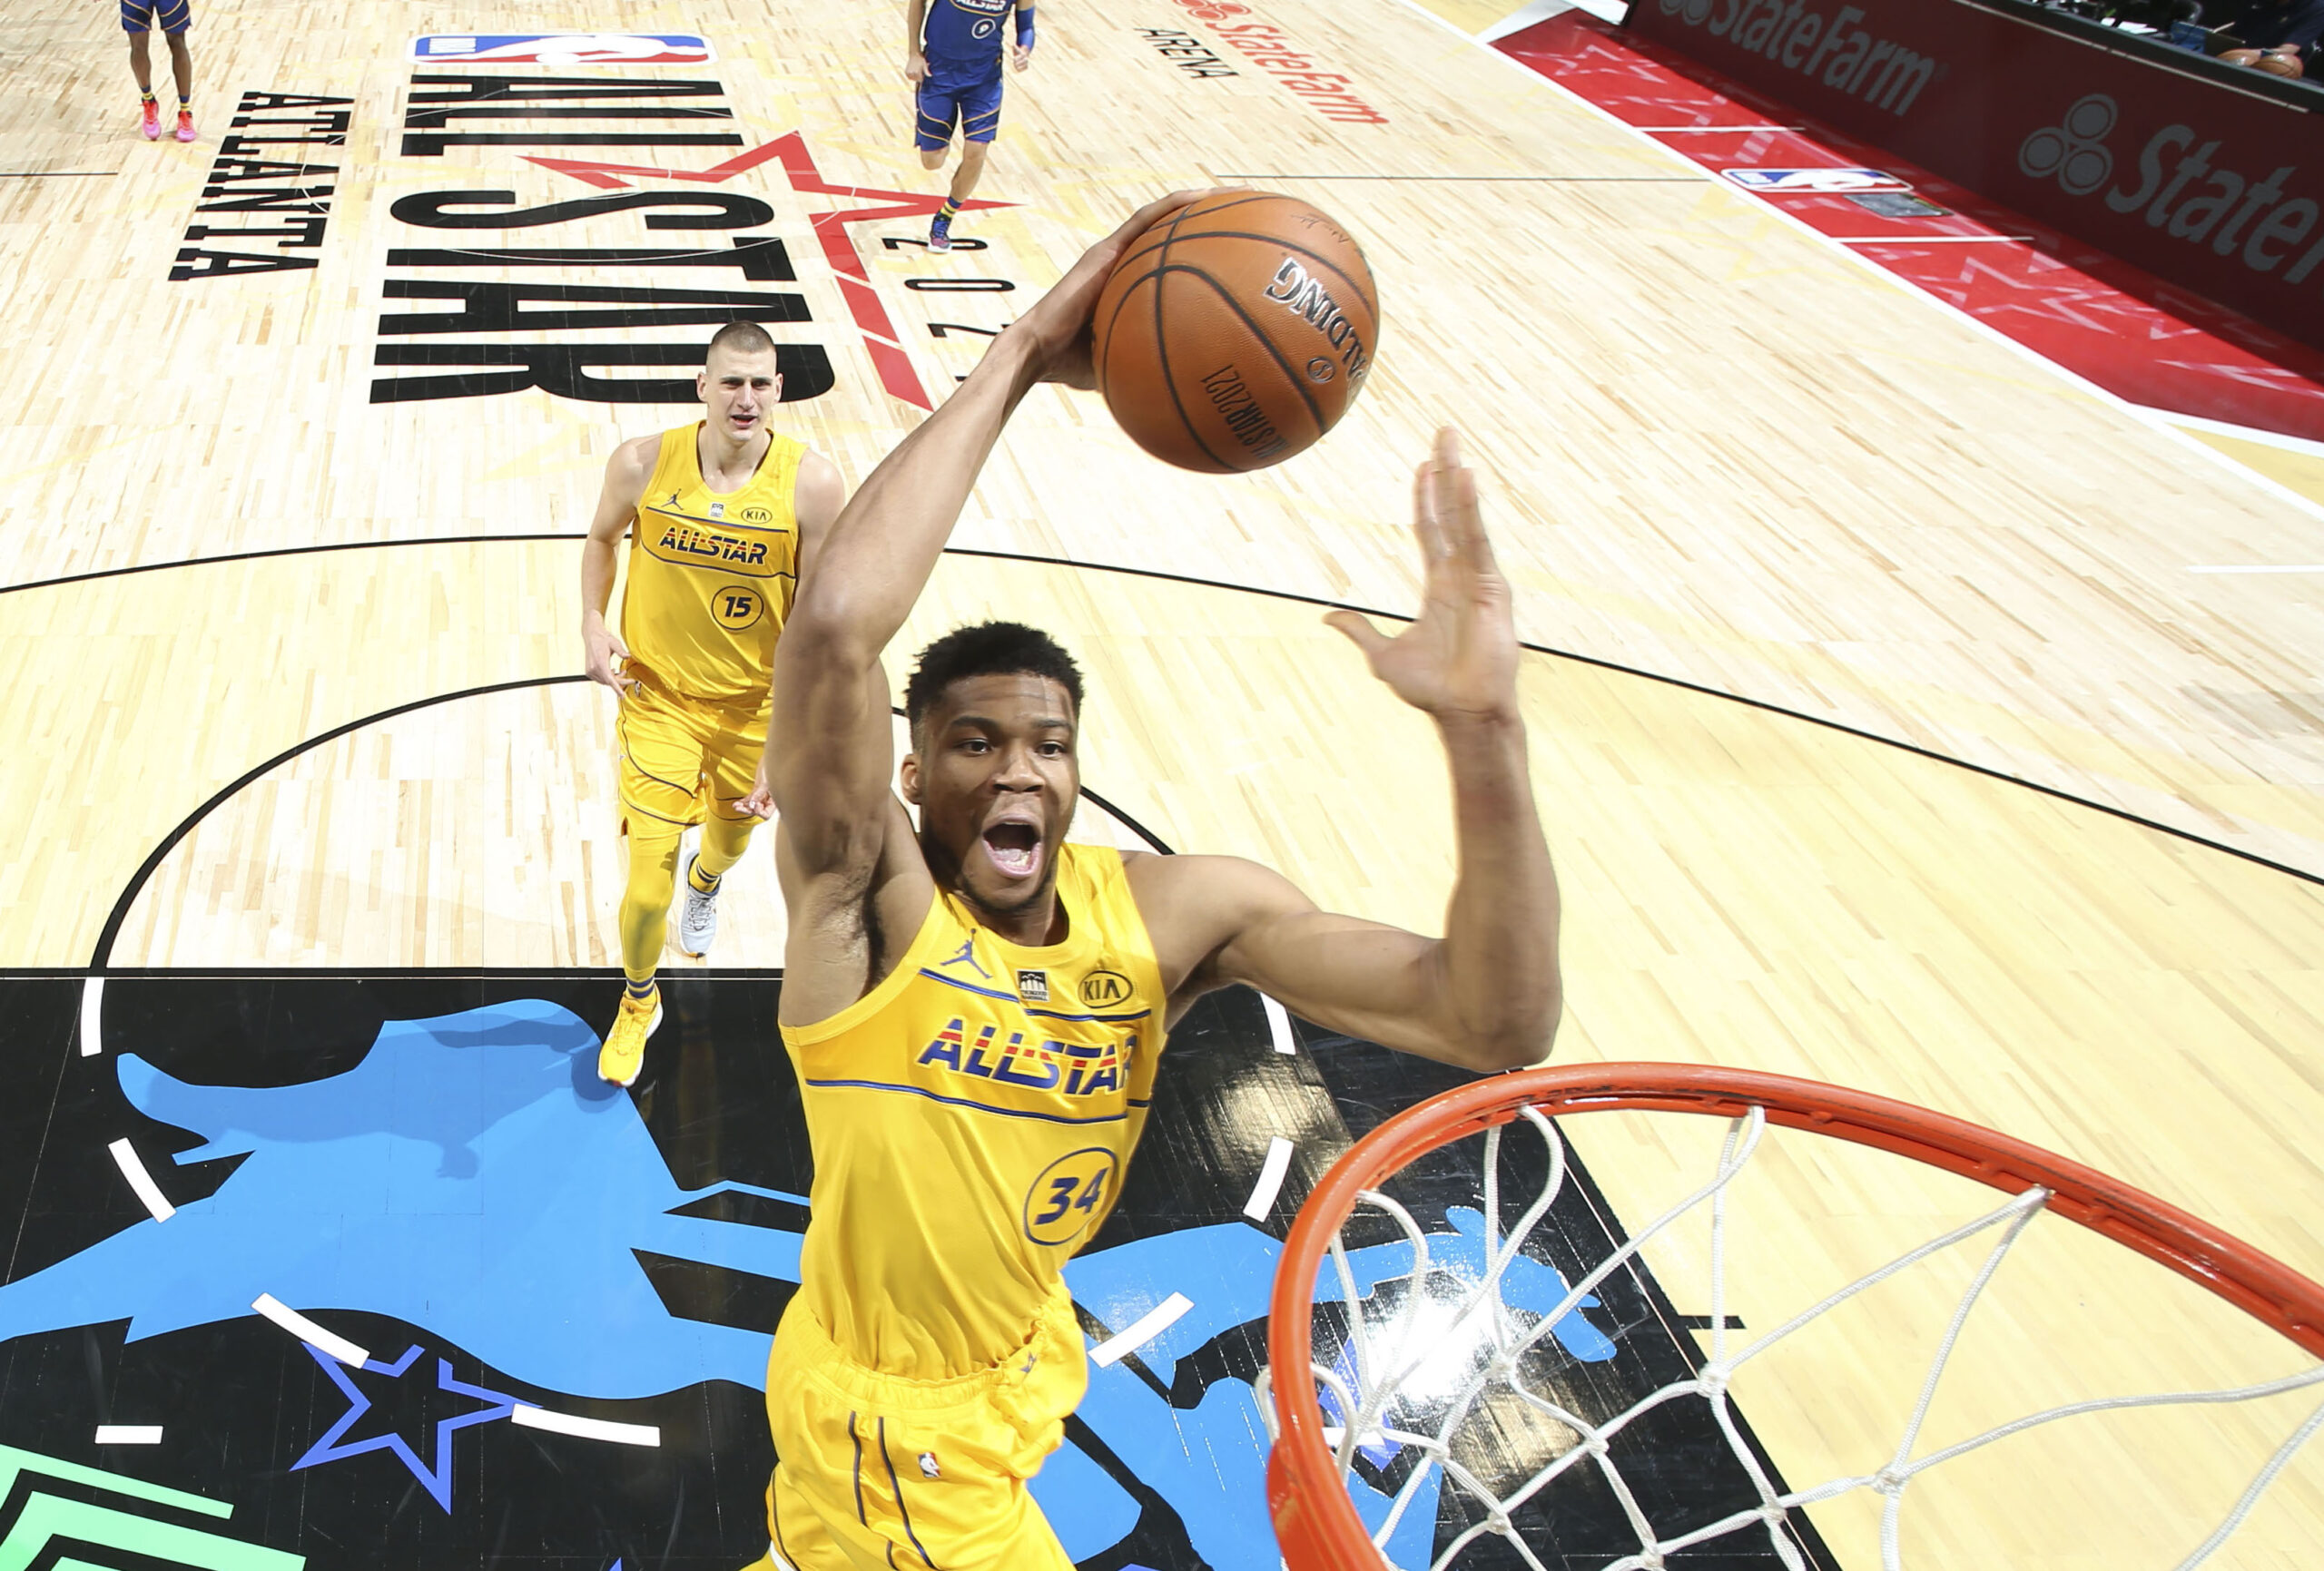 Giannis Antetokounmpo enjoys perfect shooting night, wins 2021 Kia All-Star MVP award